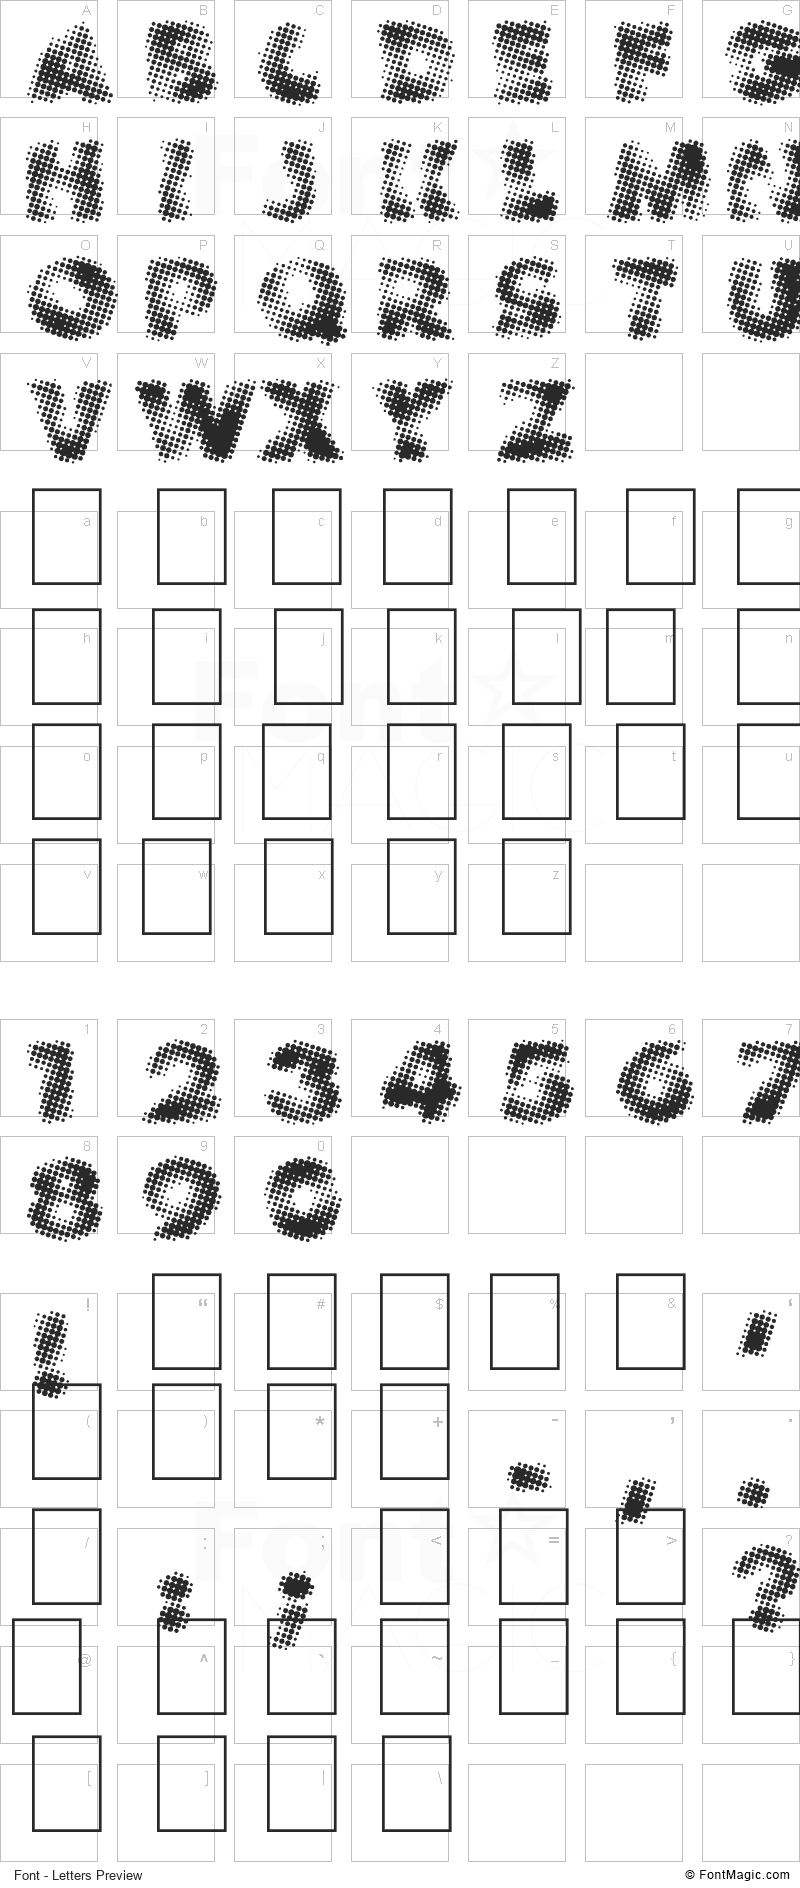 Vanished Font - All Latters Preview Chart